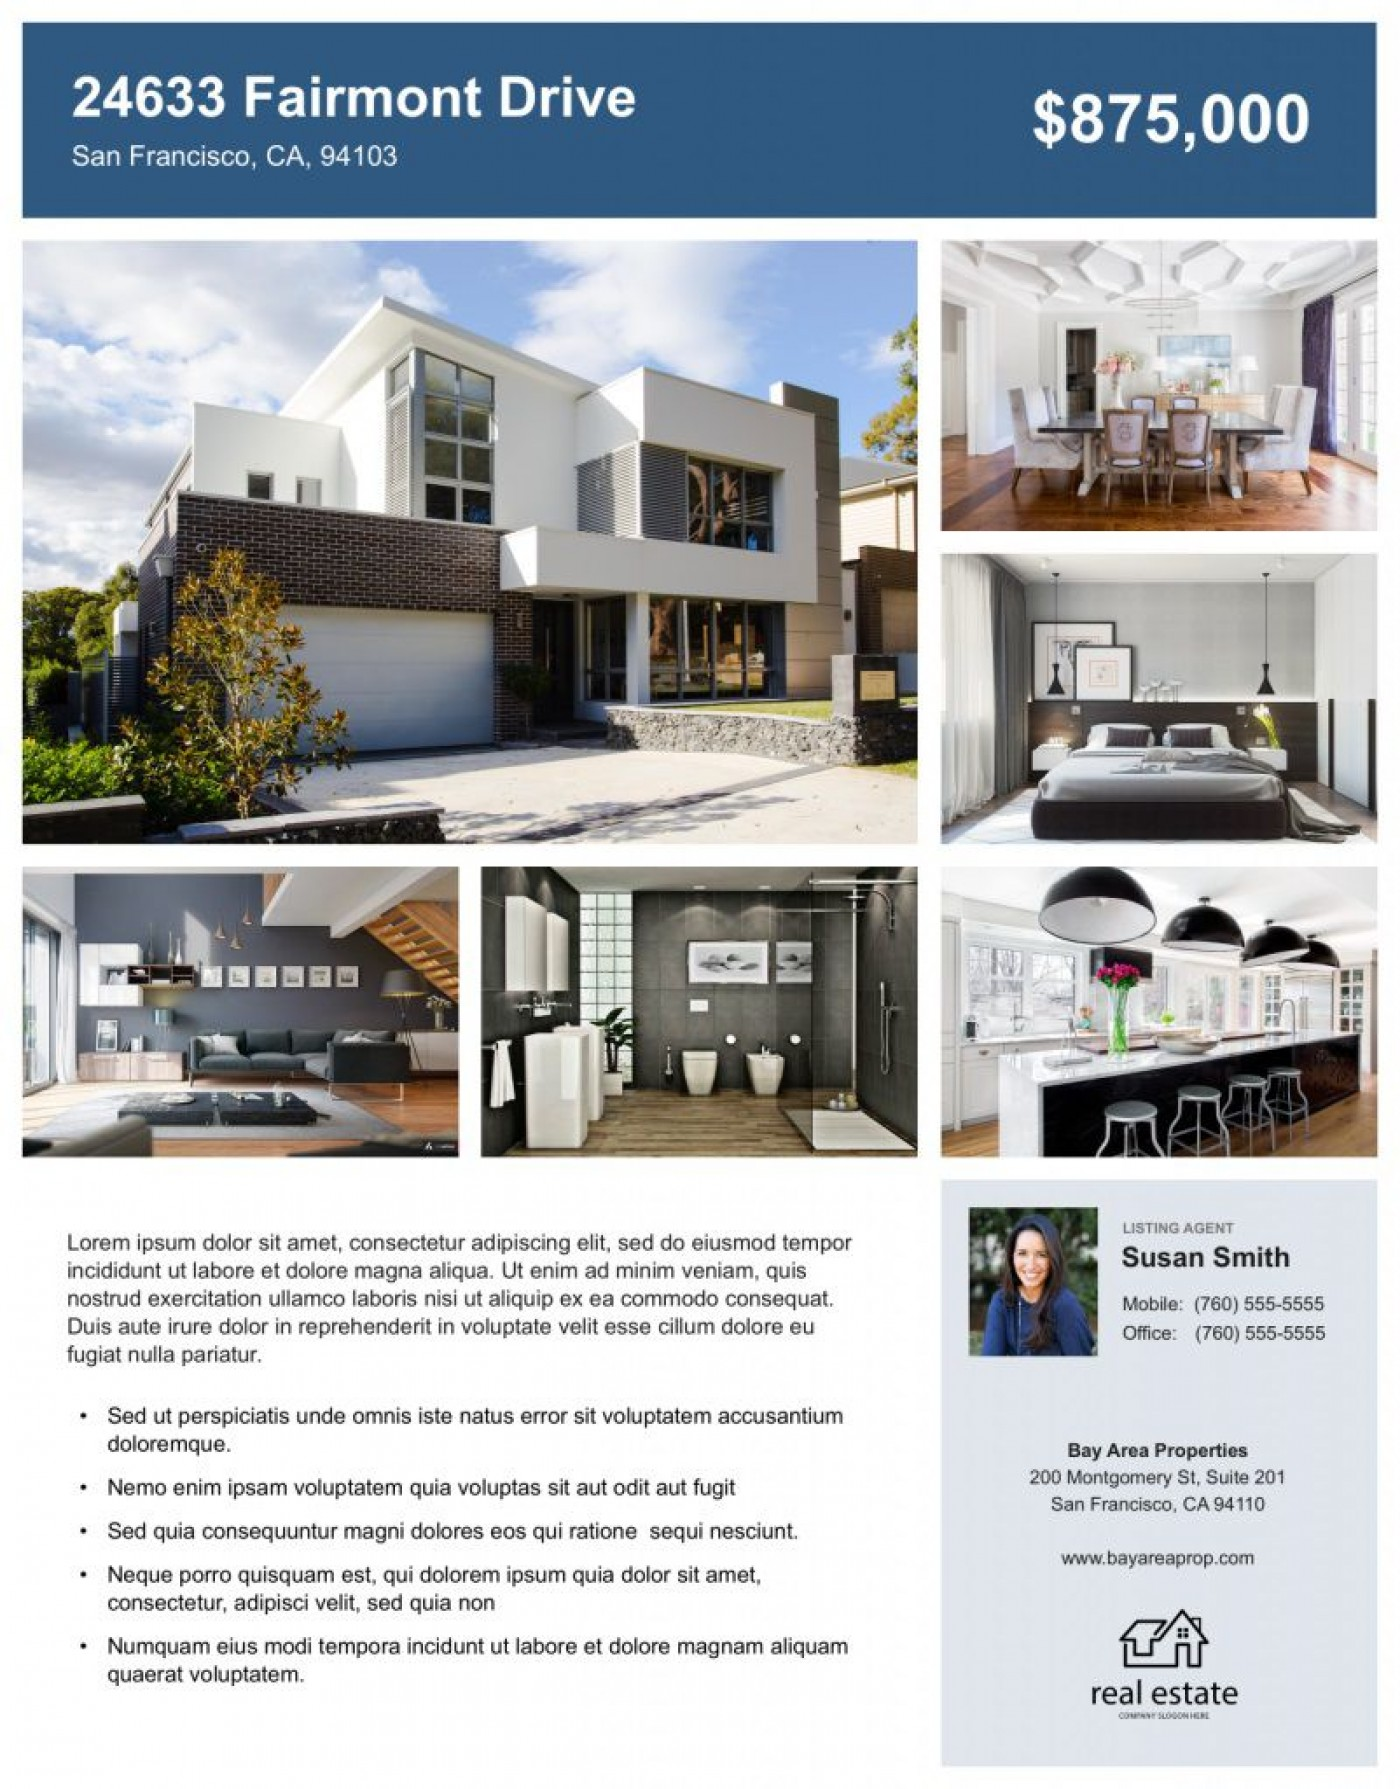 008 Impressive House For Sale Flyer Template Highest Quality  Free Real Estate Example By Owner1400